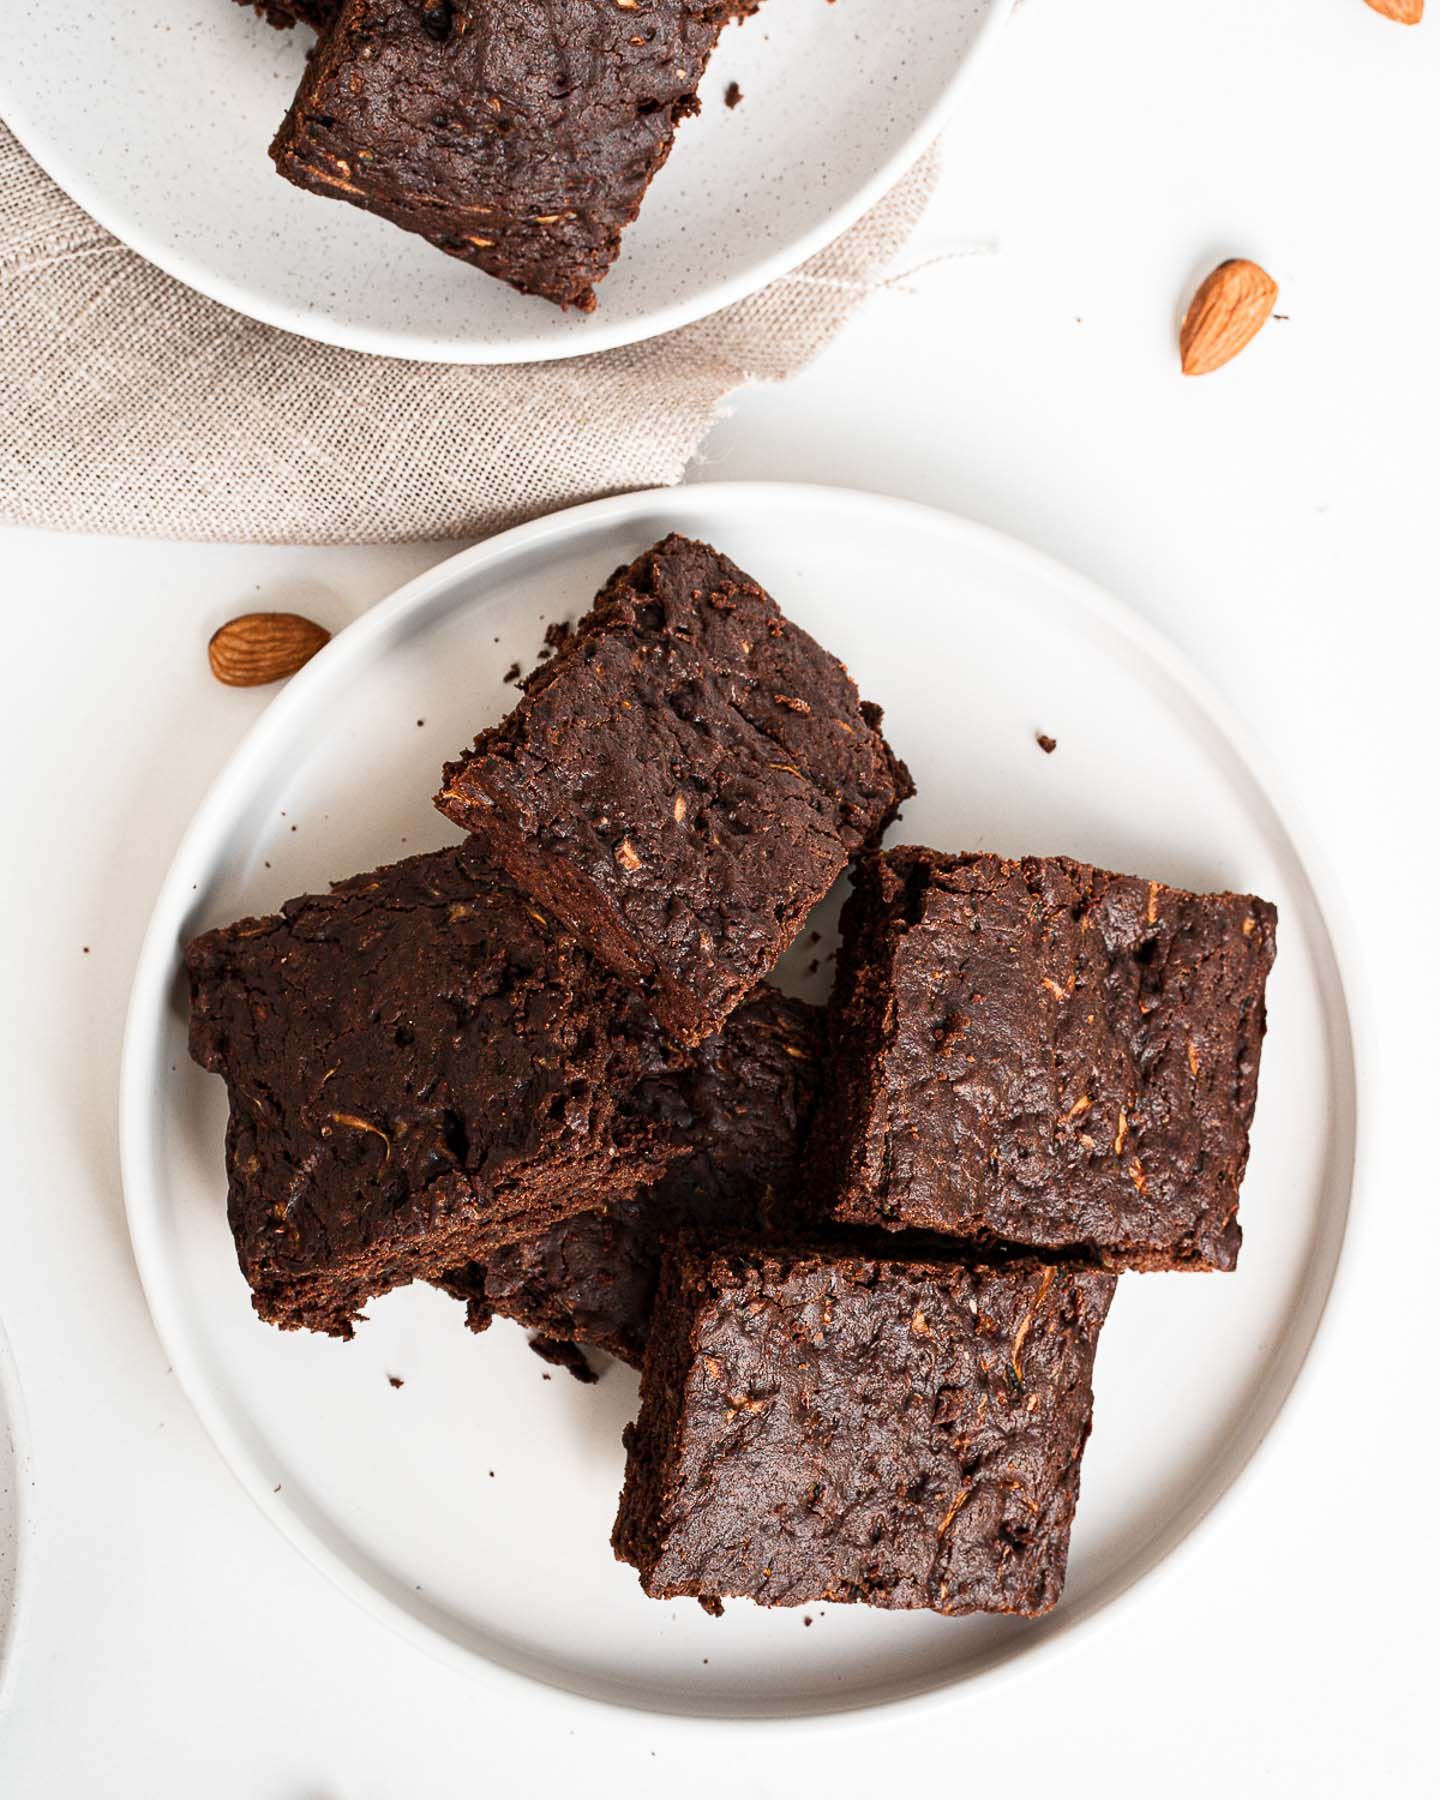 Plate of sliced brownies with zucchini.